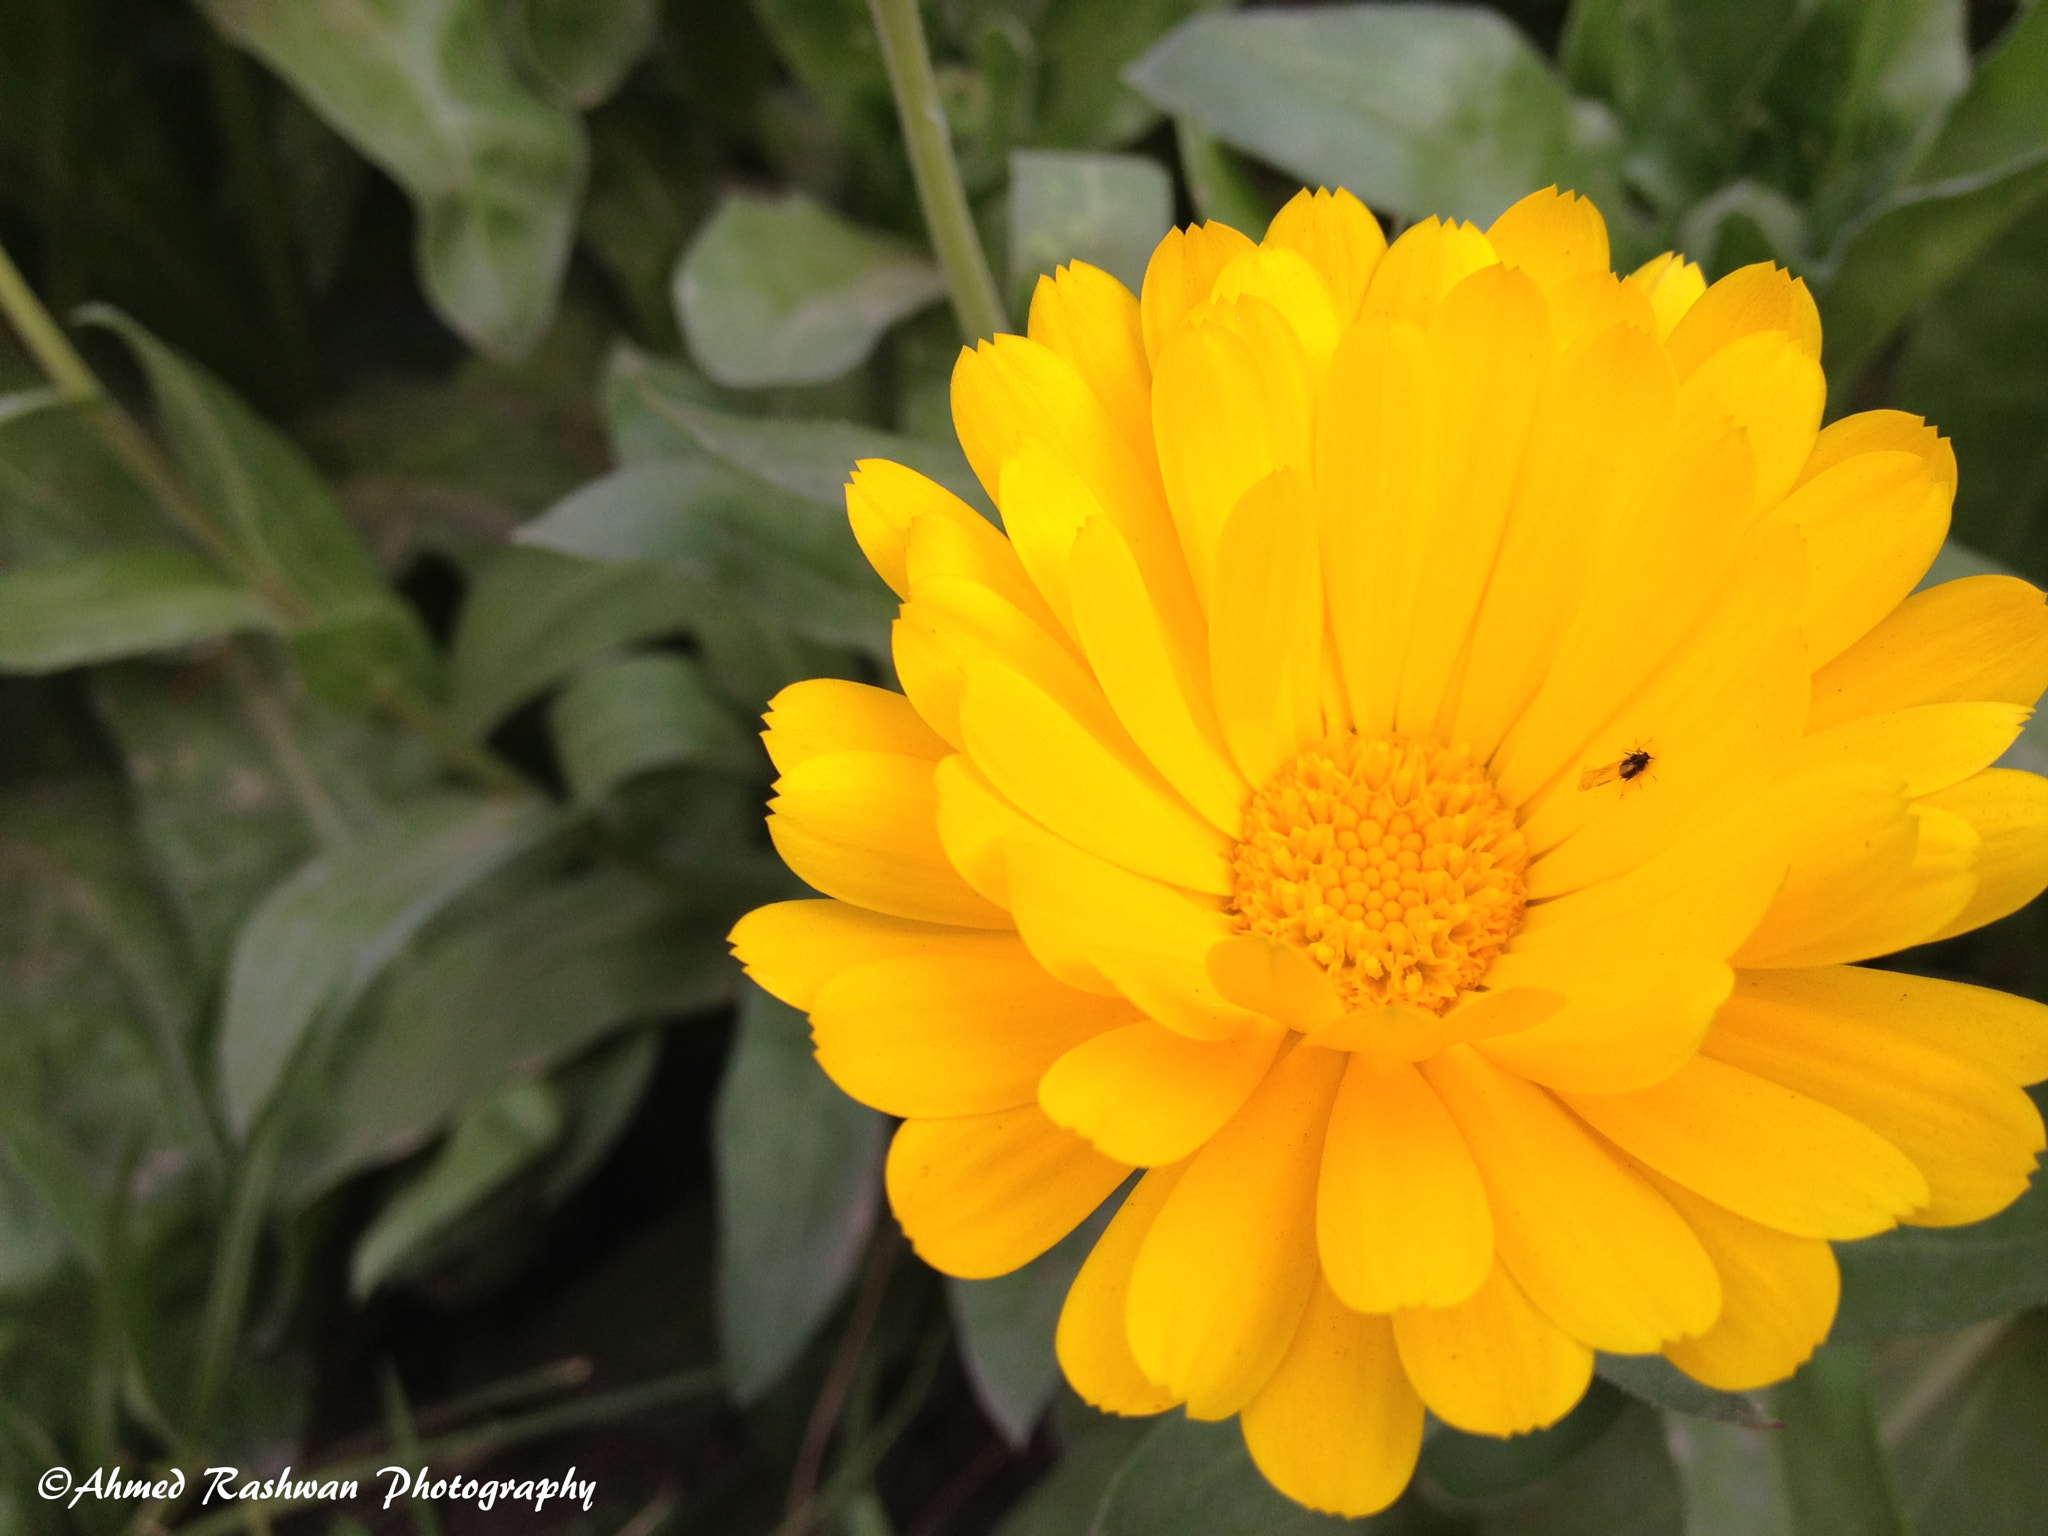 Photograph Beetle on Sunflower for lunch by Ahmed Rashwan on 500px